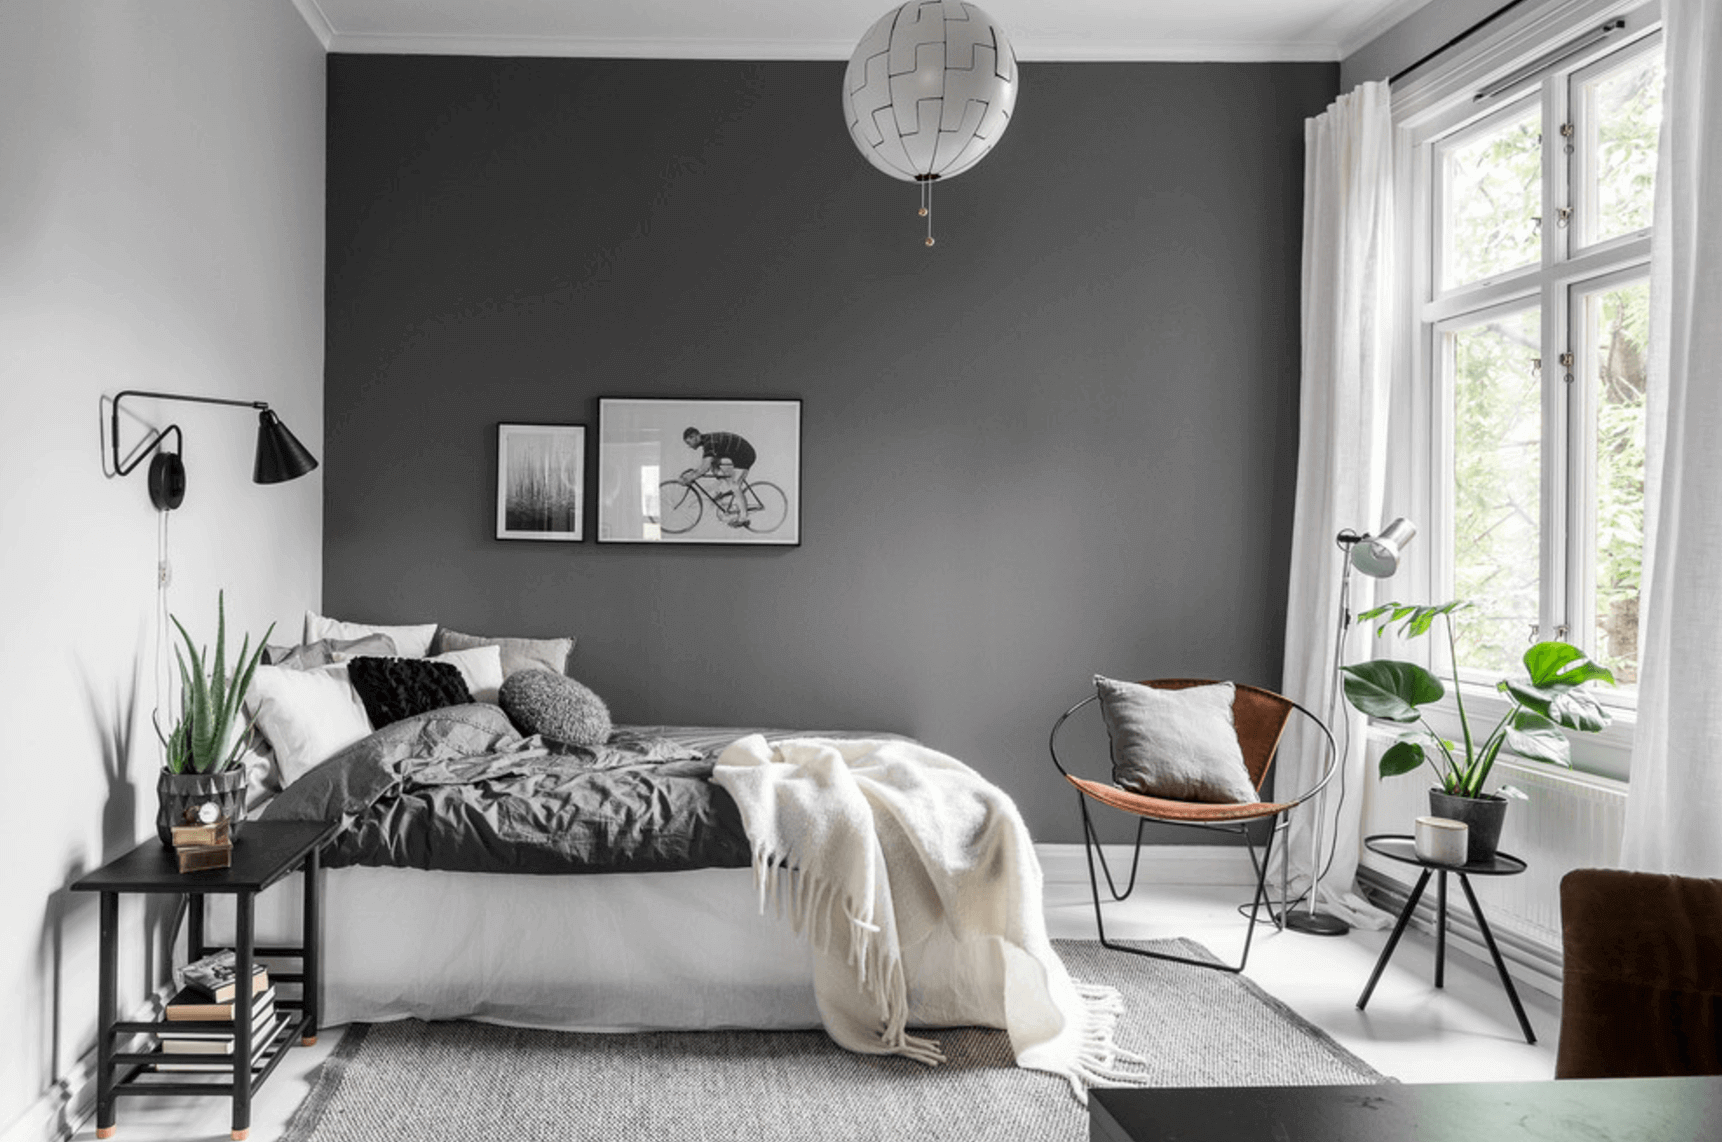 Bedroom Transformation With Wall Painting Ideas For Bedroom Grey